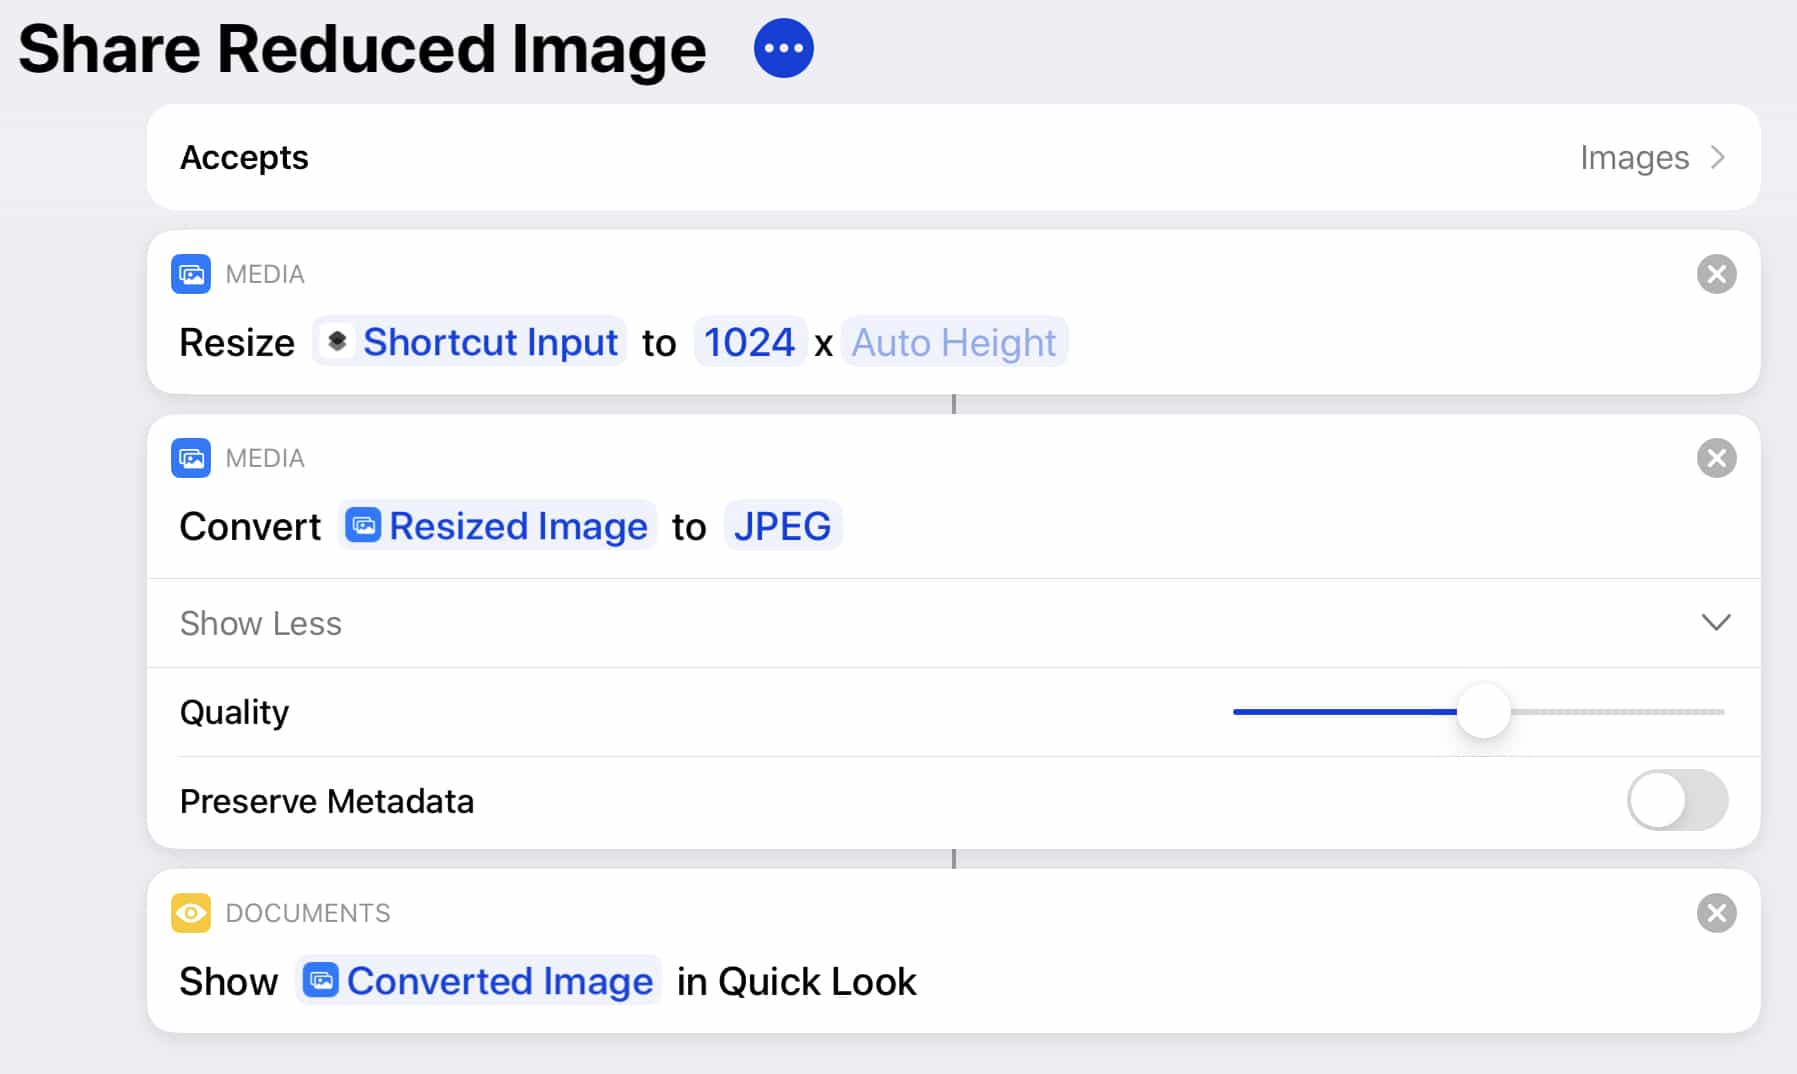 Jason Snell iPadOS and iOS shortcut share reduced image